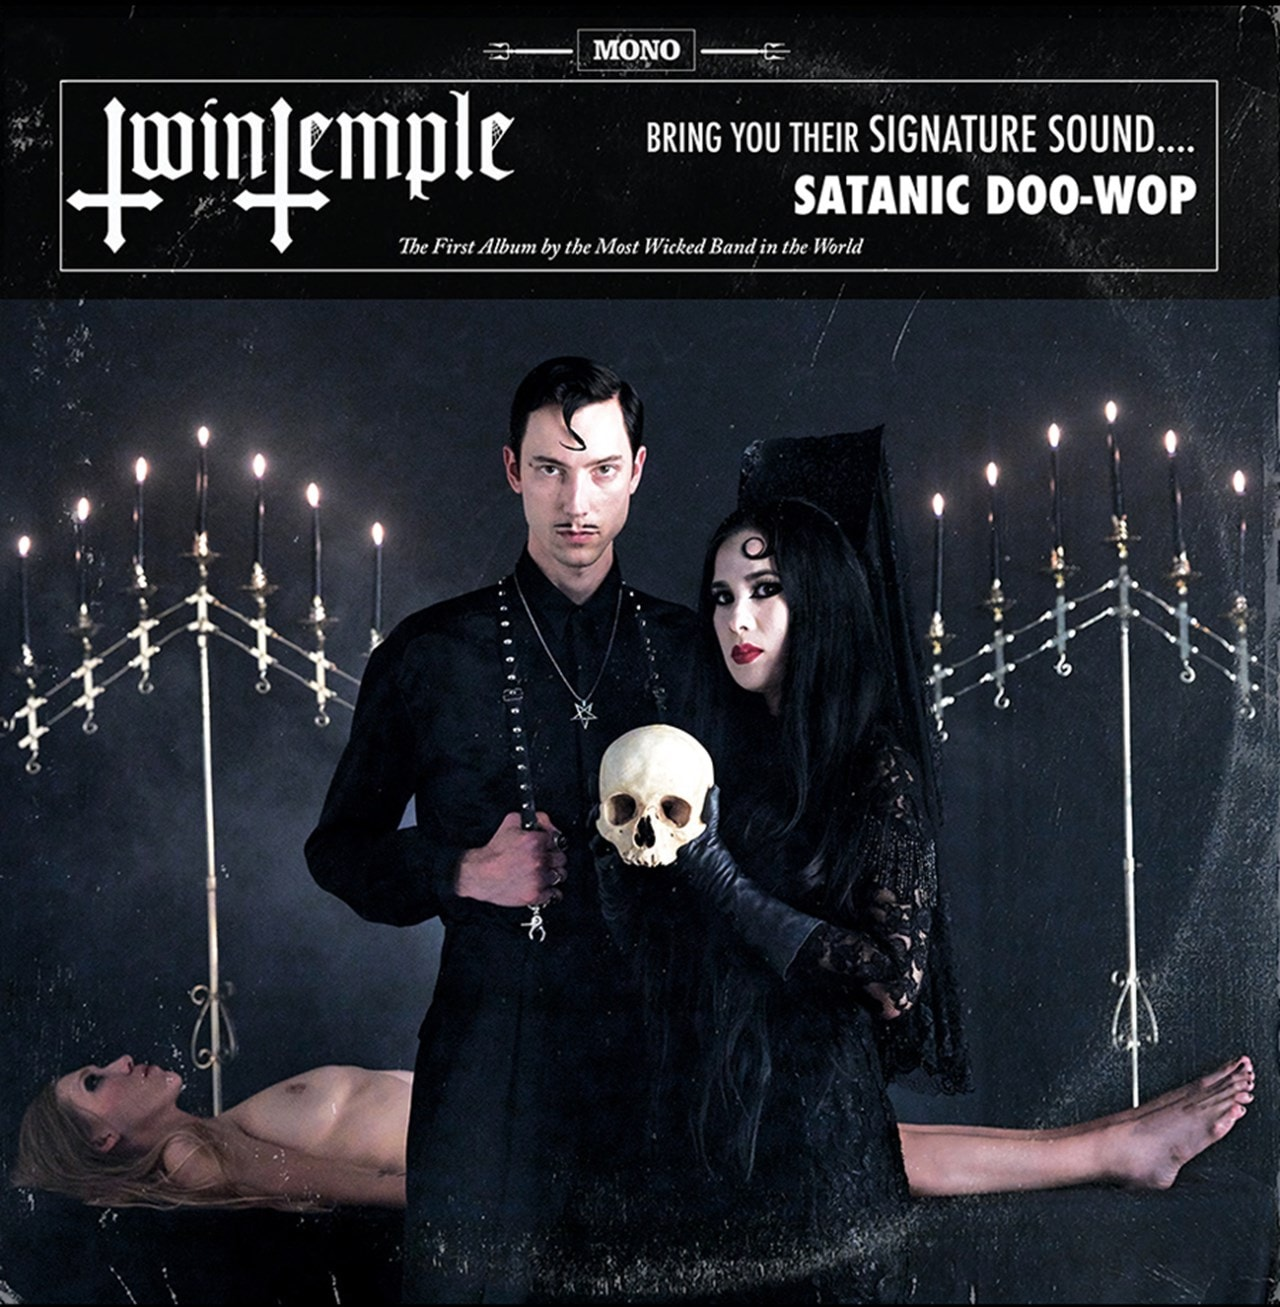 Bring You Their Signature Sound... Satanic Doo-wop: The First Album By the Wickedest Band in the Wor - 1